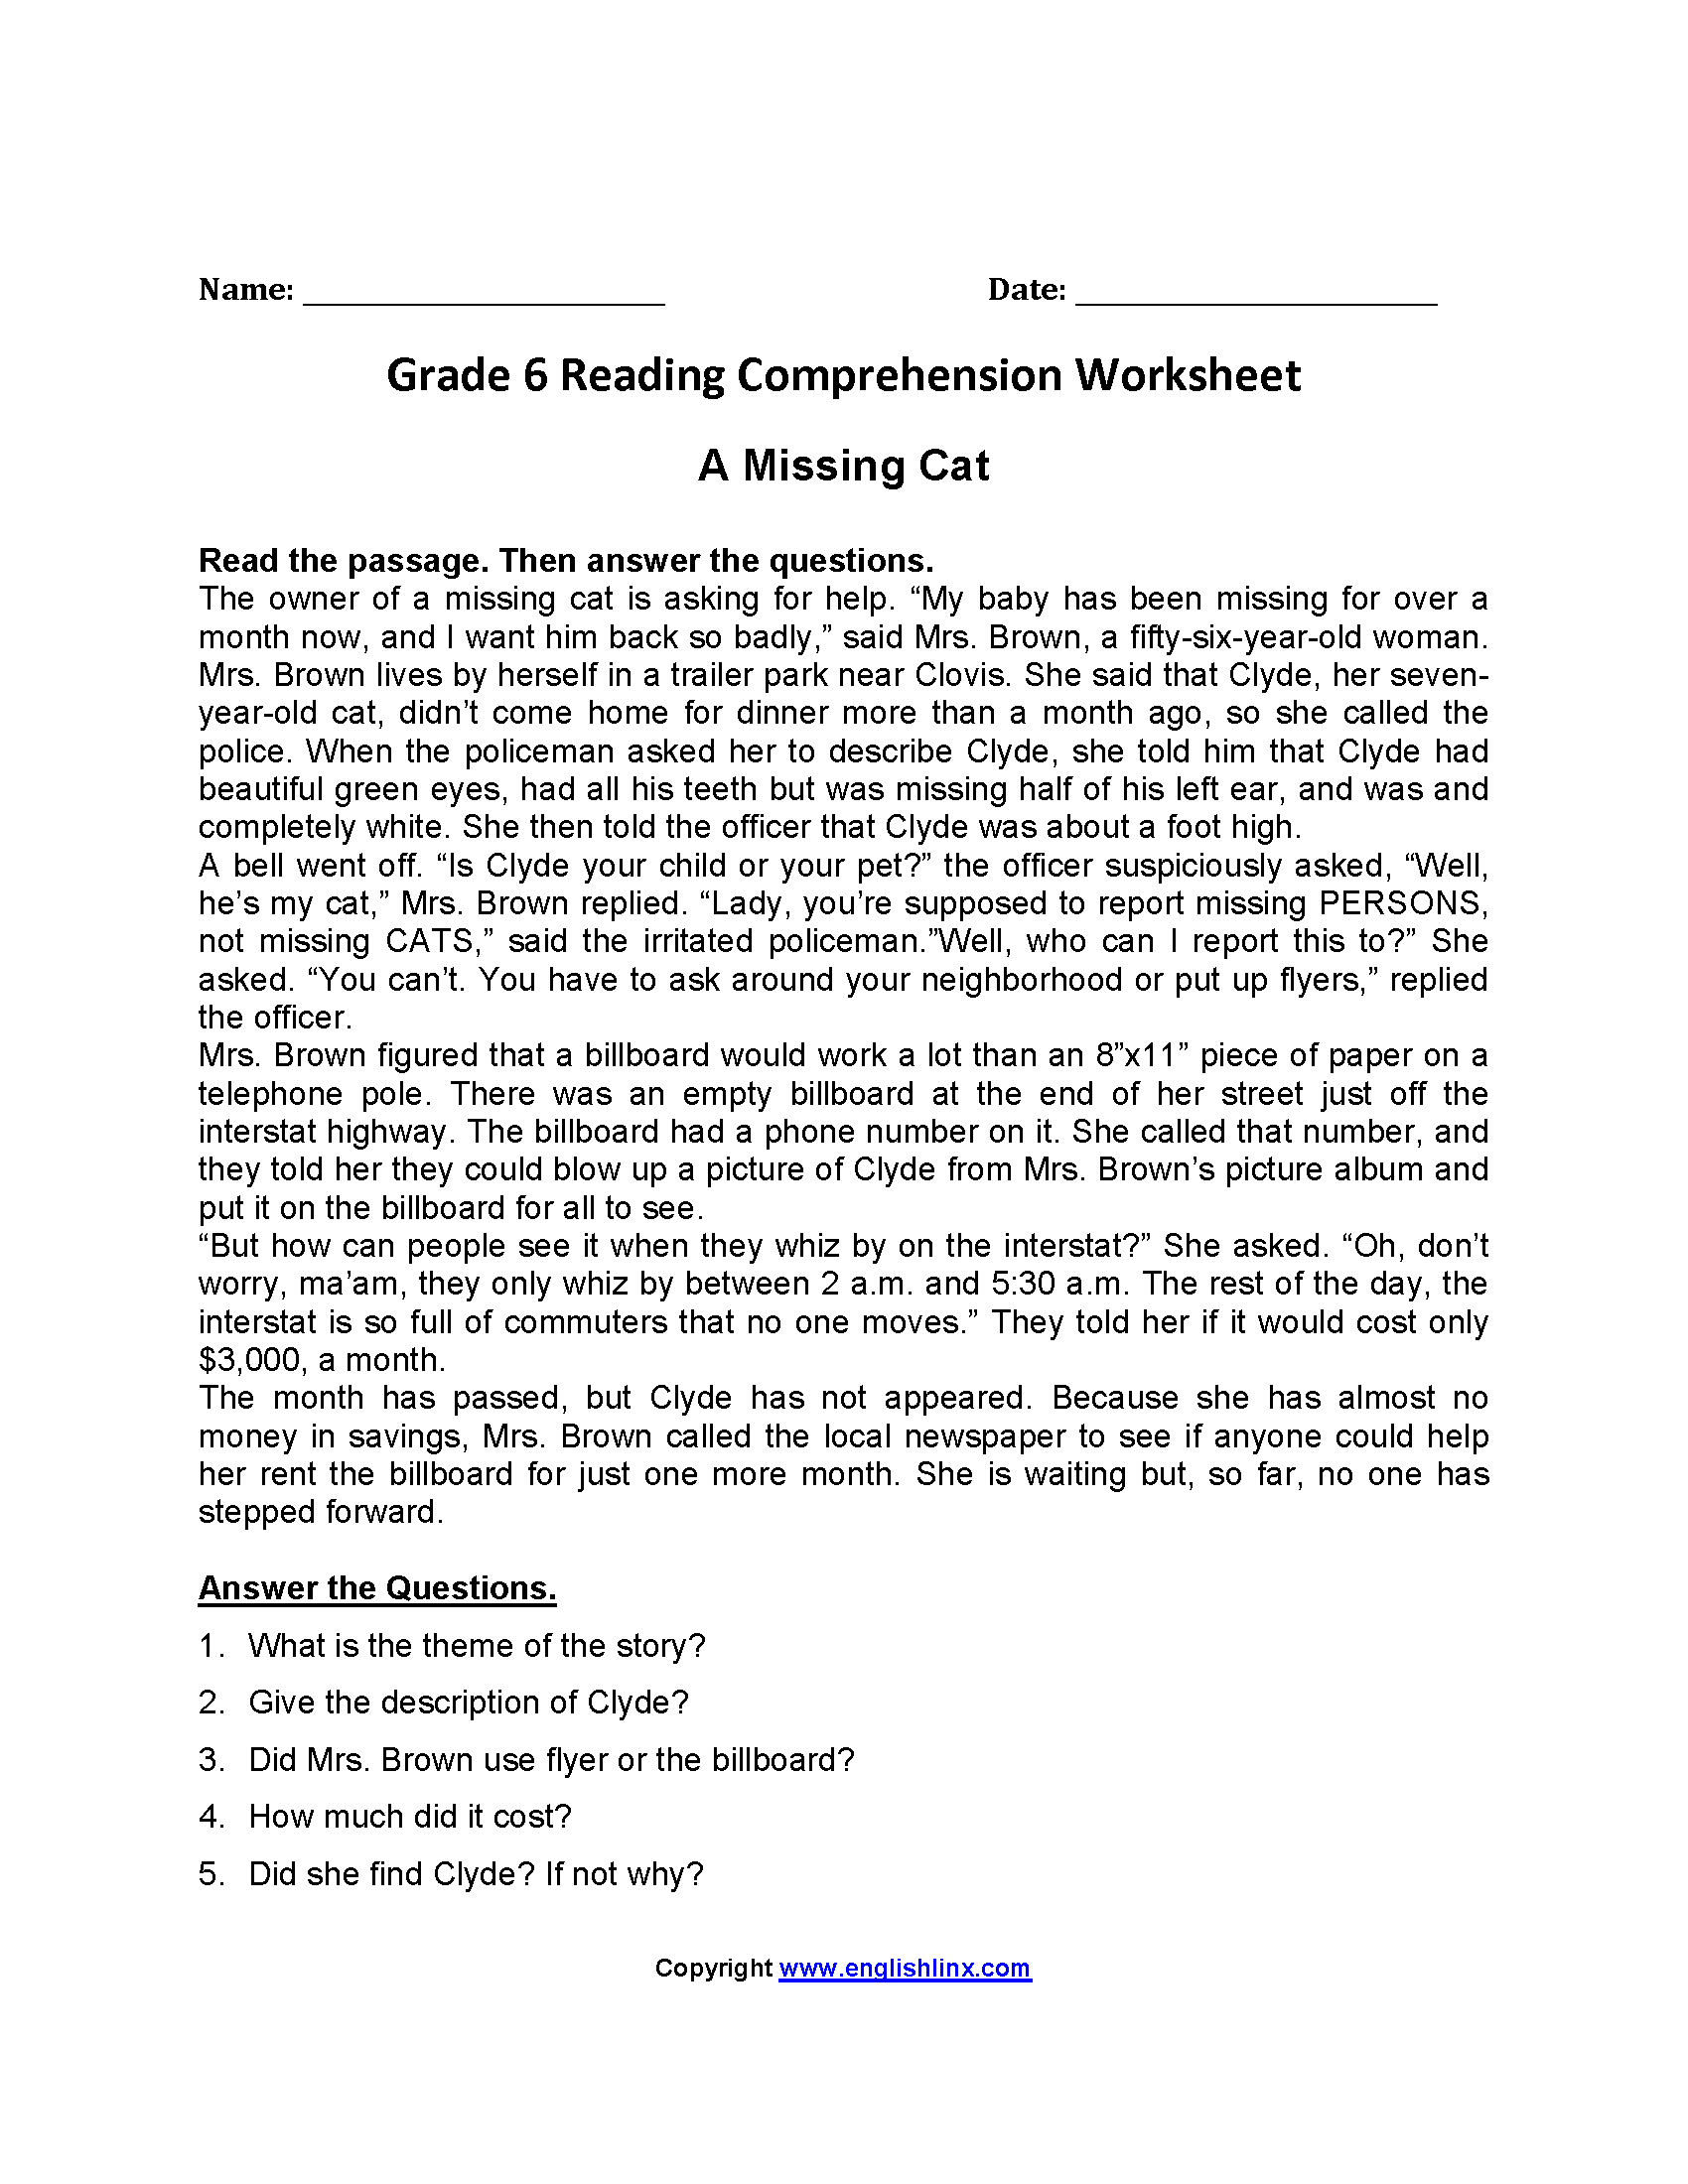 Worksheet Reading Comprehension Worksheets 6th Grade